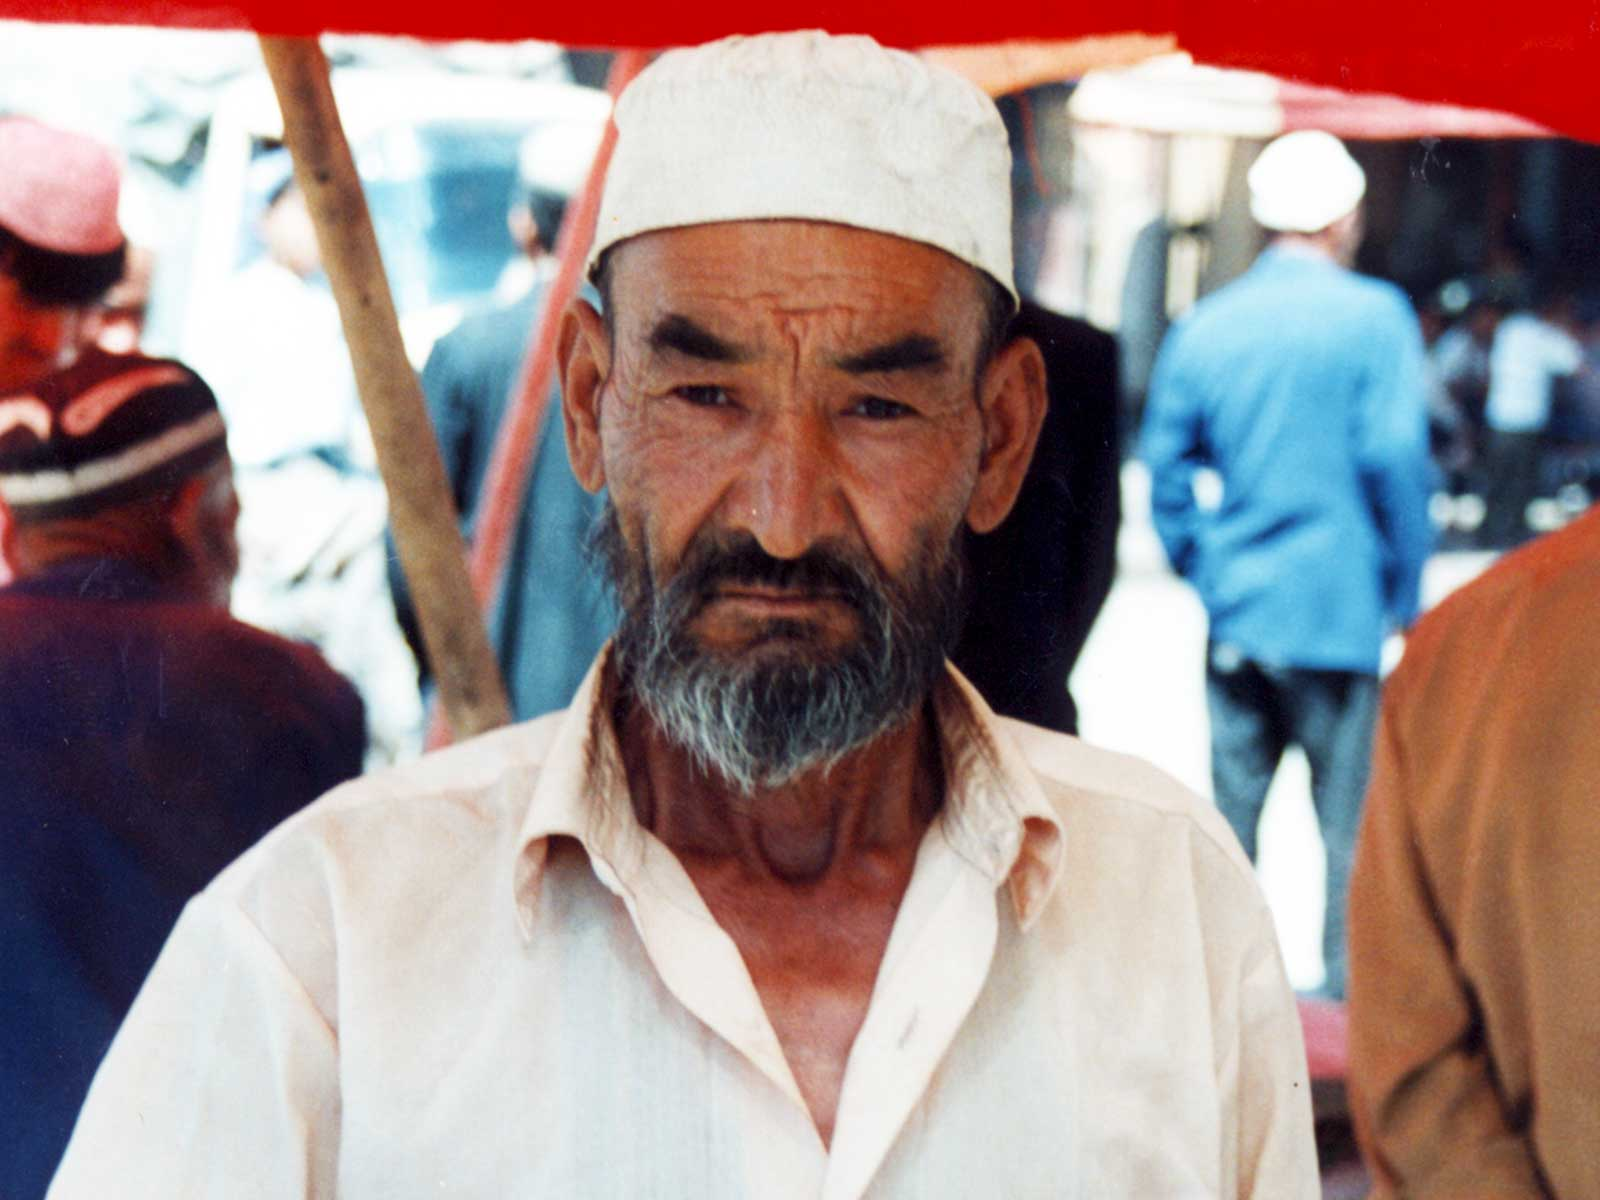 Tobacco seller - Kashgar China - Silk Road Photo Journal - Steven Andrew Martin - University of Hawaii Study Abroad